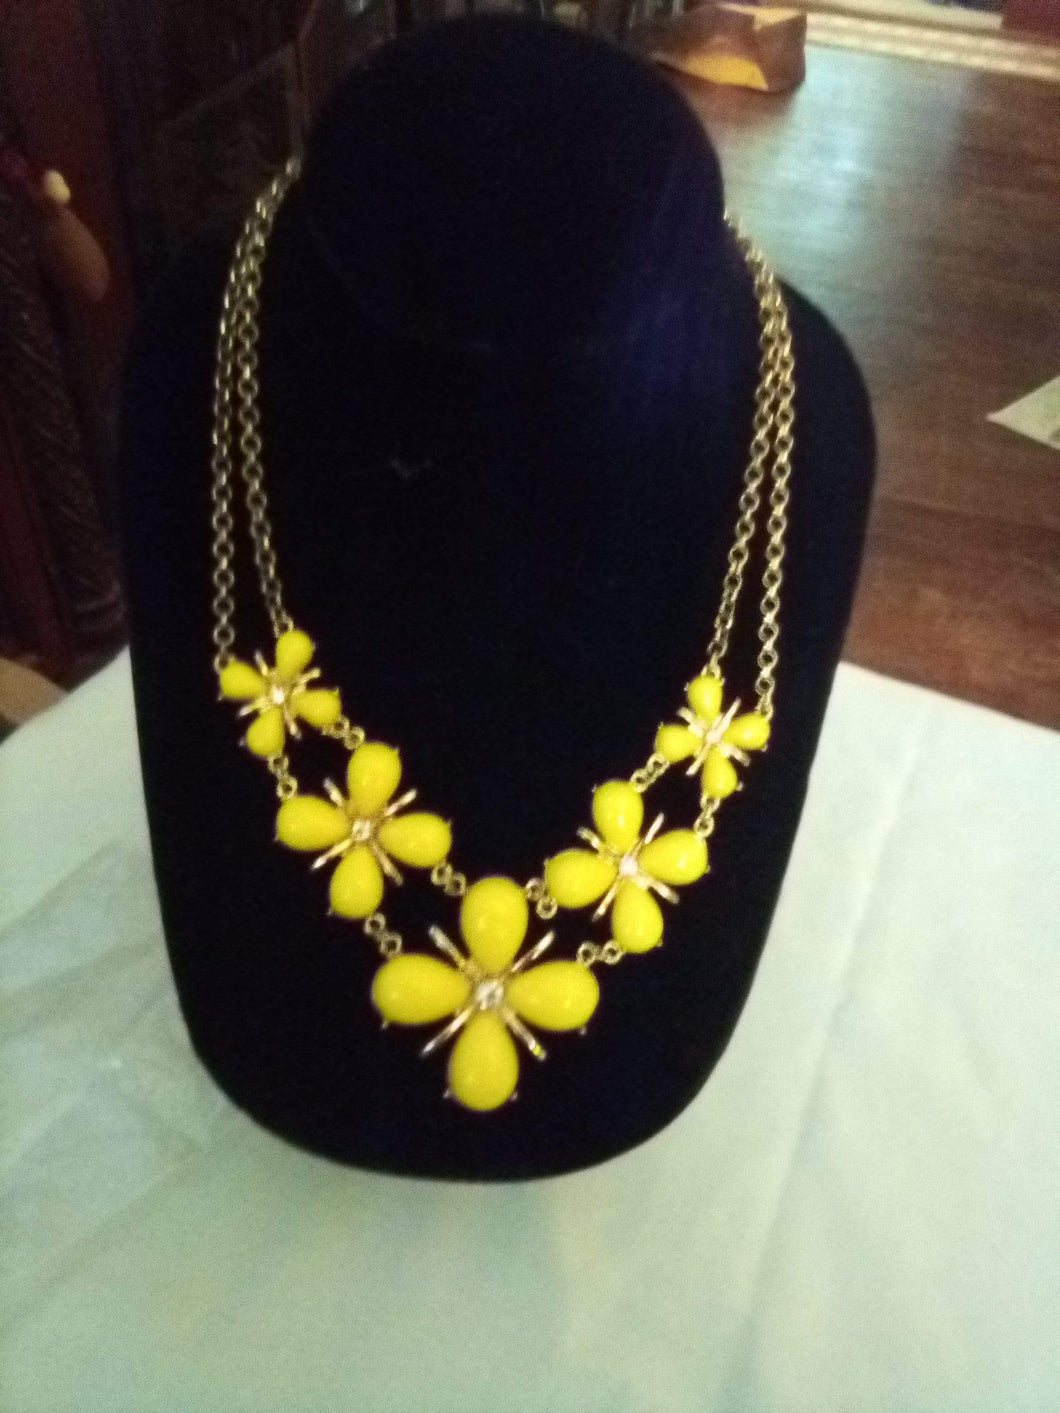 A dressy yellow necklace - B&P'sringsnthings